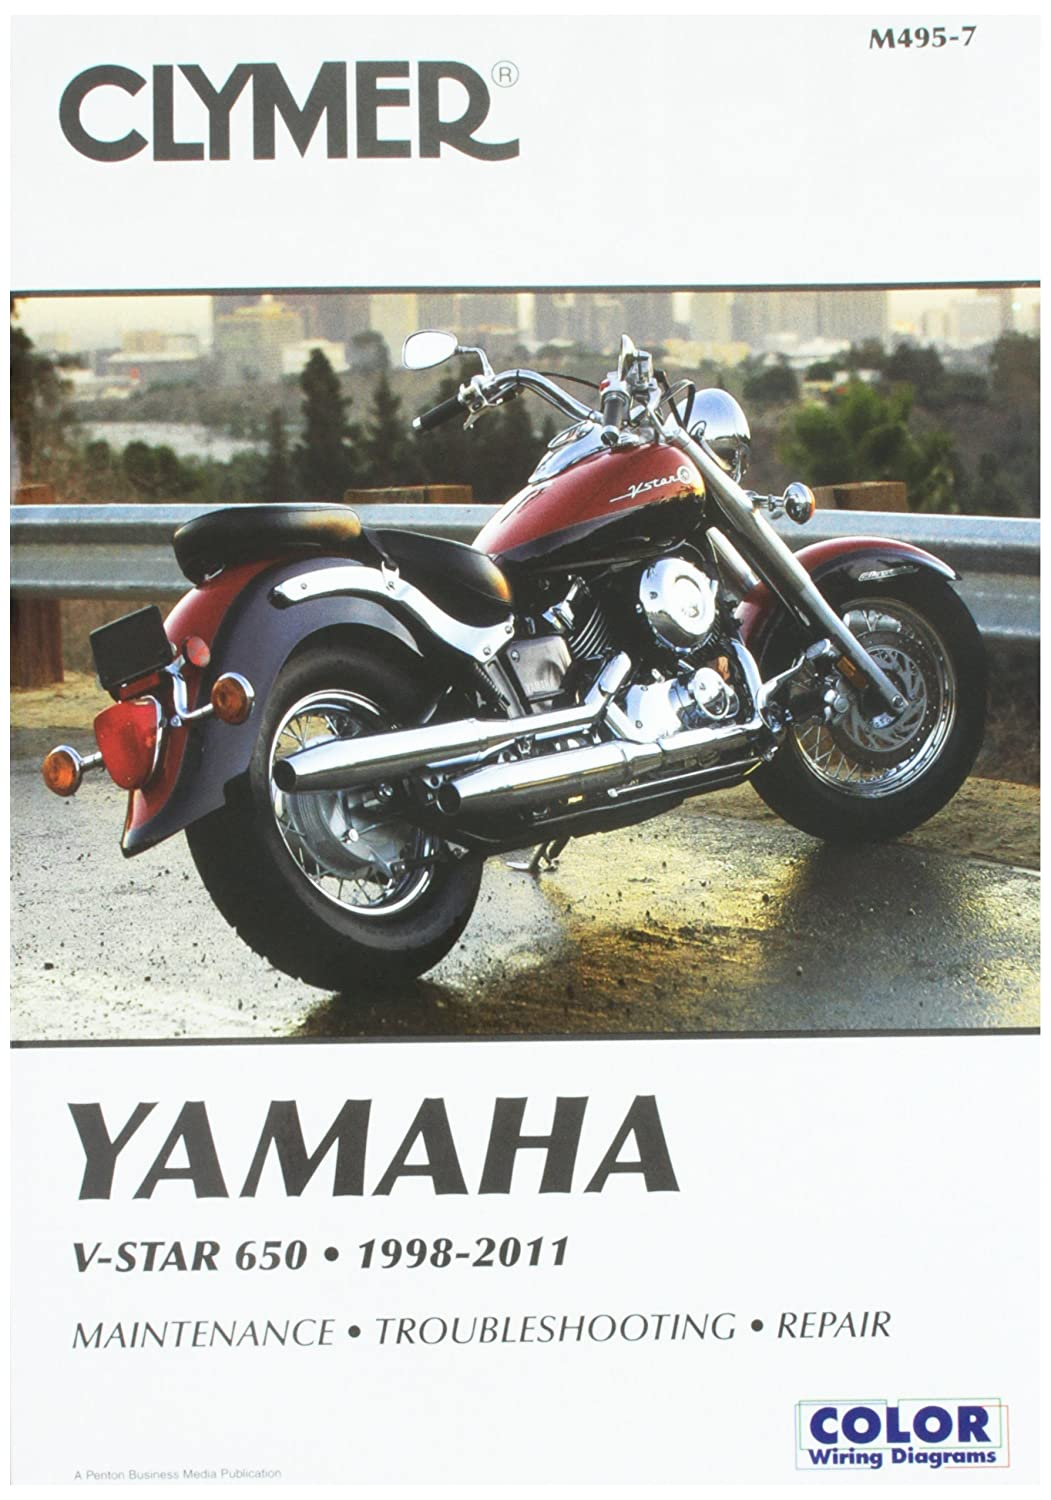 81wn7OvCz7L._SL1500_ amazon com clymer yamaha v star 650 (1998 2011) ronwright yamaha v star 650 wiring diagram at nearapp.co